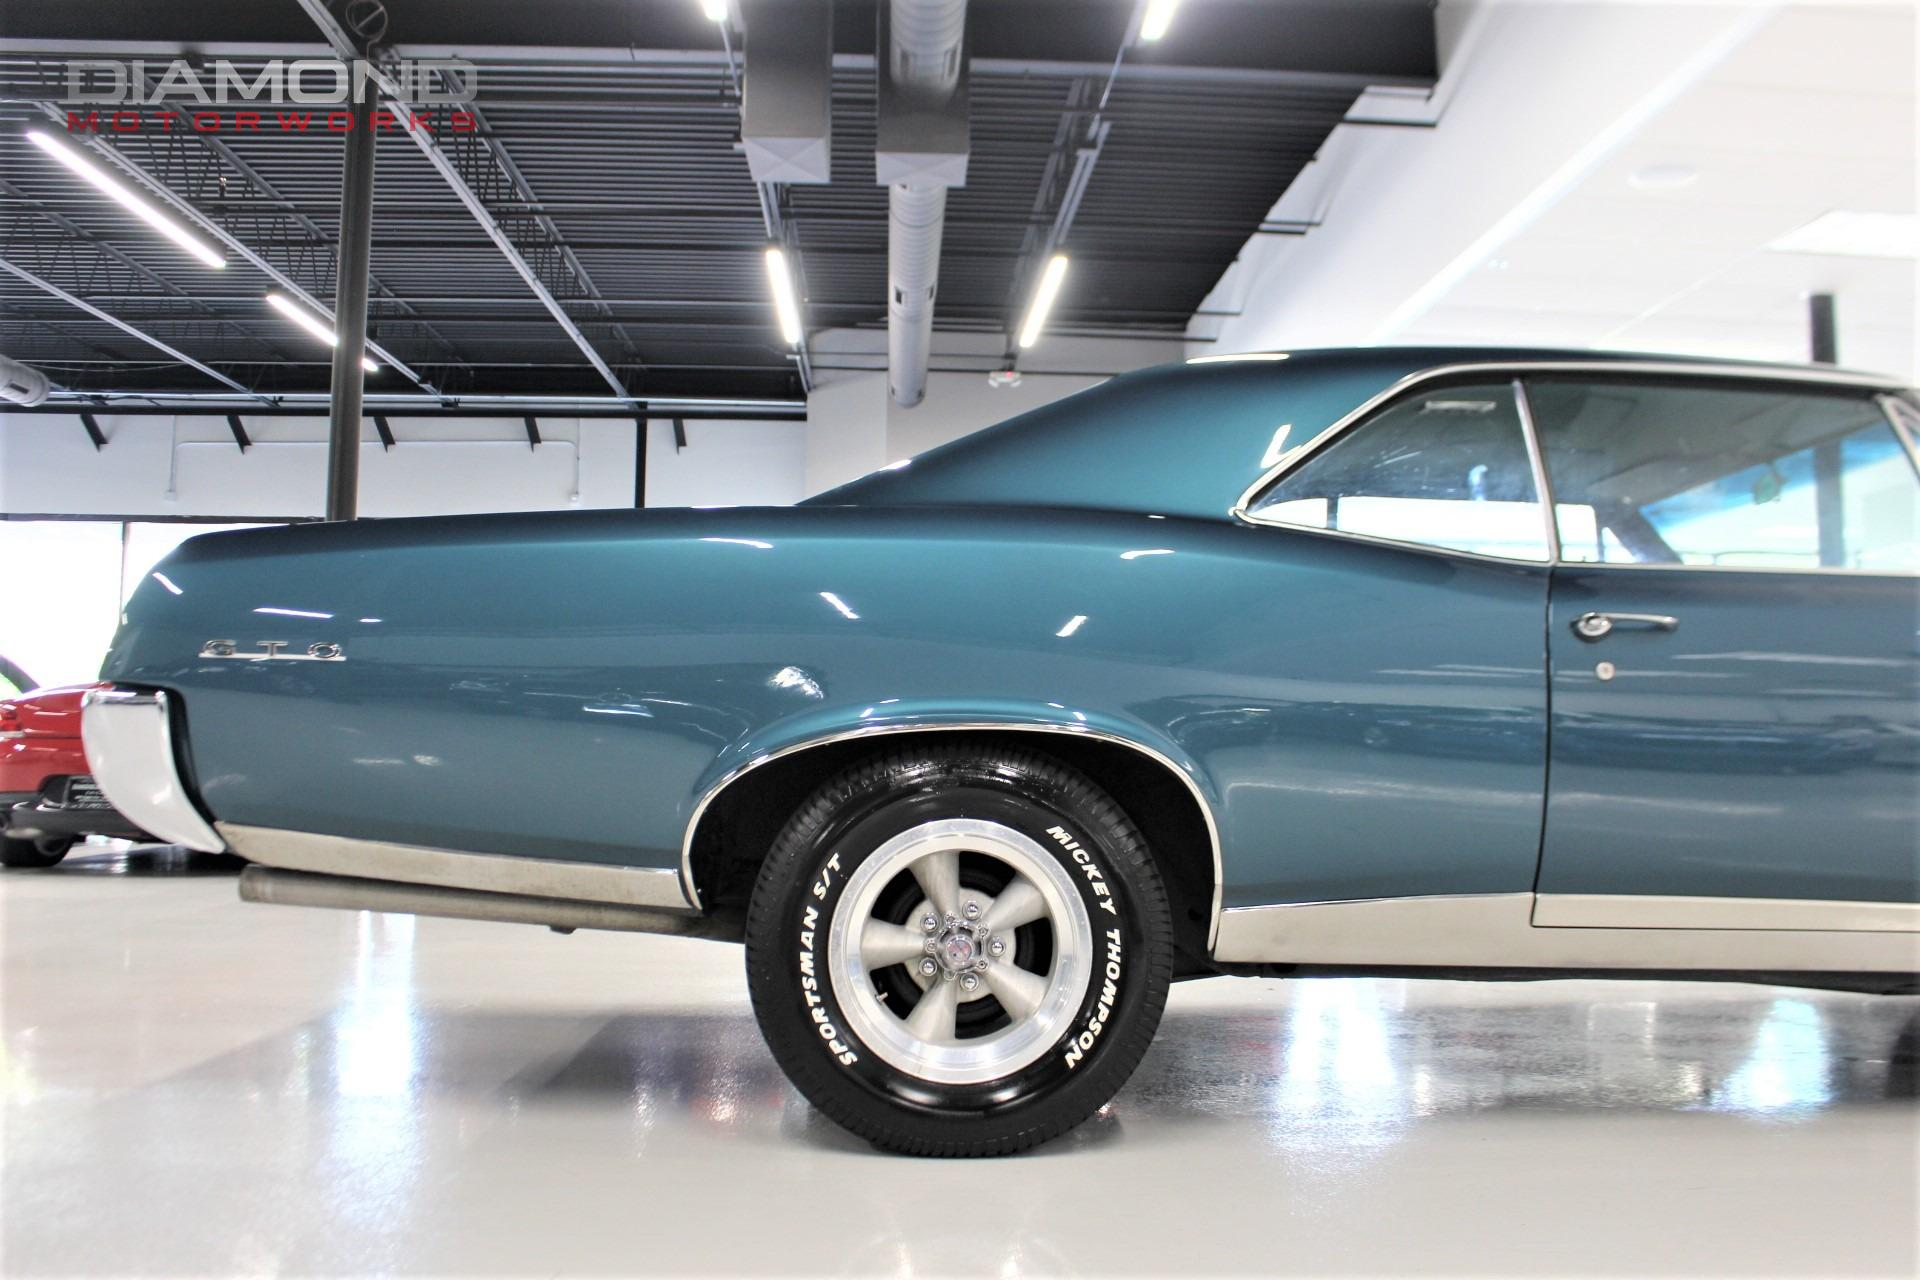 1967 pontiac gto stock 107098 for sale near lisle il il pontiac dealer. Black Bedroom Furniture Sets. Home Design Ideas